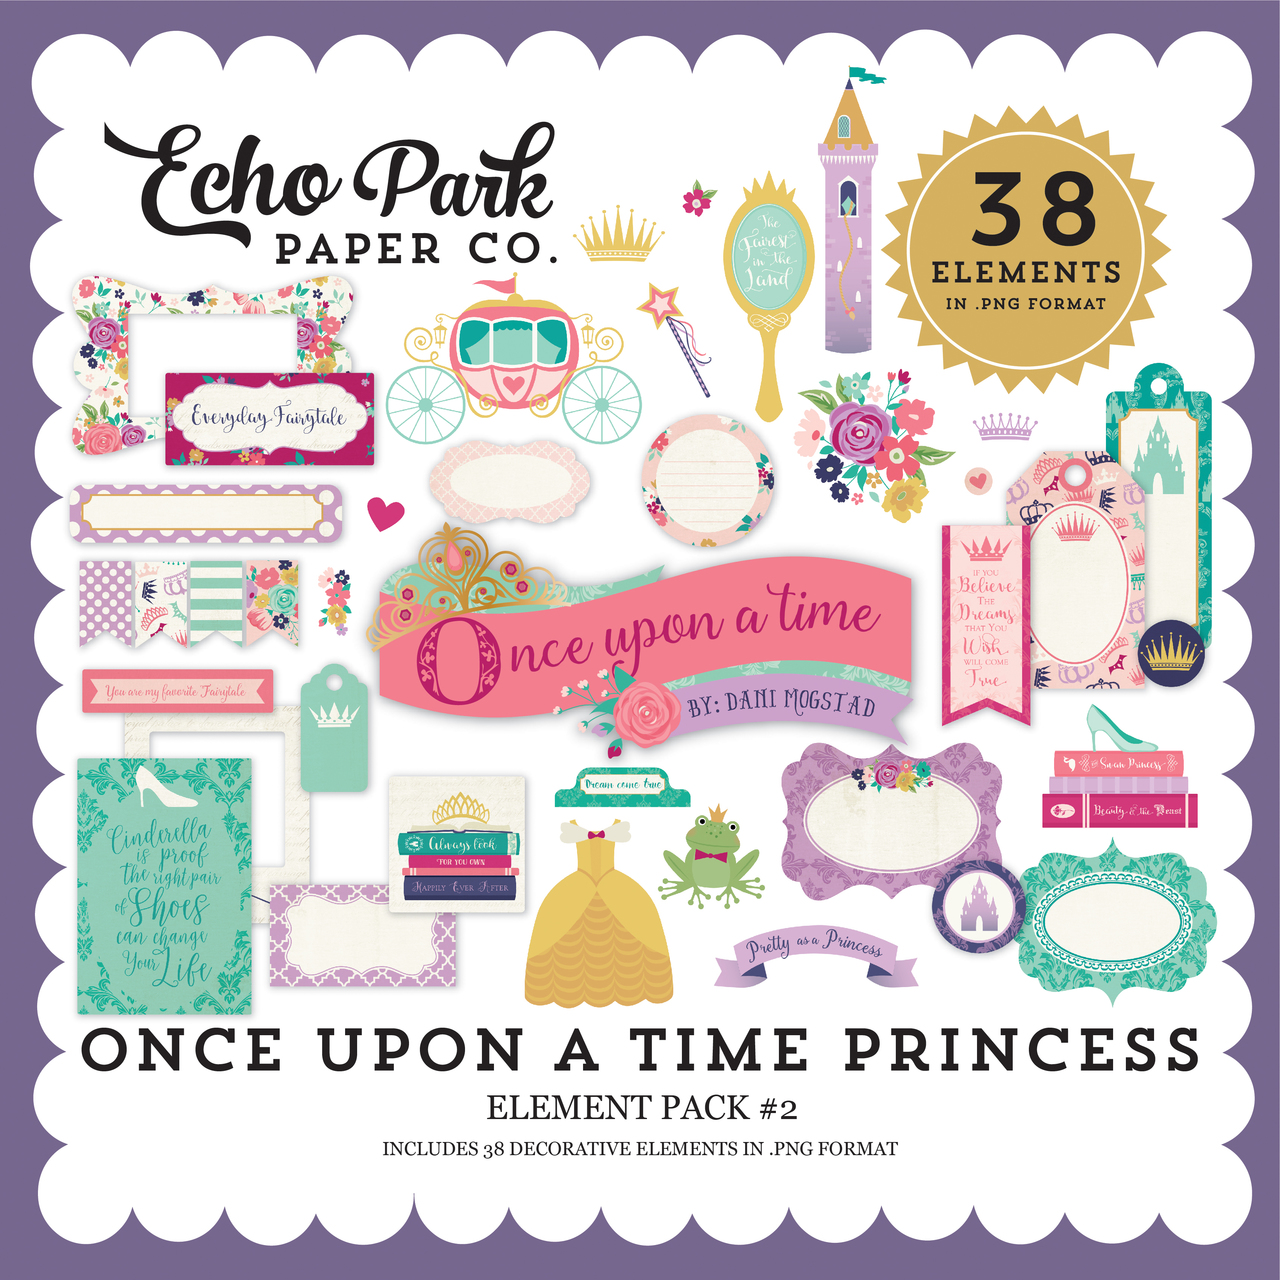 Once Upon a Time Princess Element Pack #2